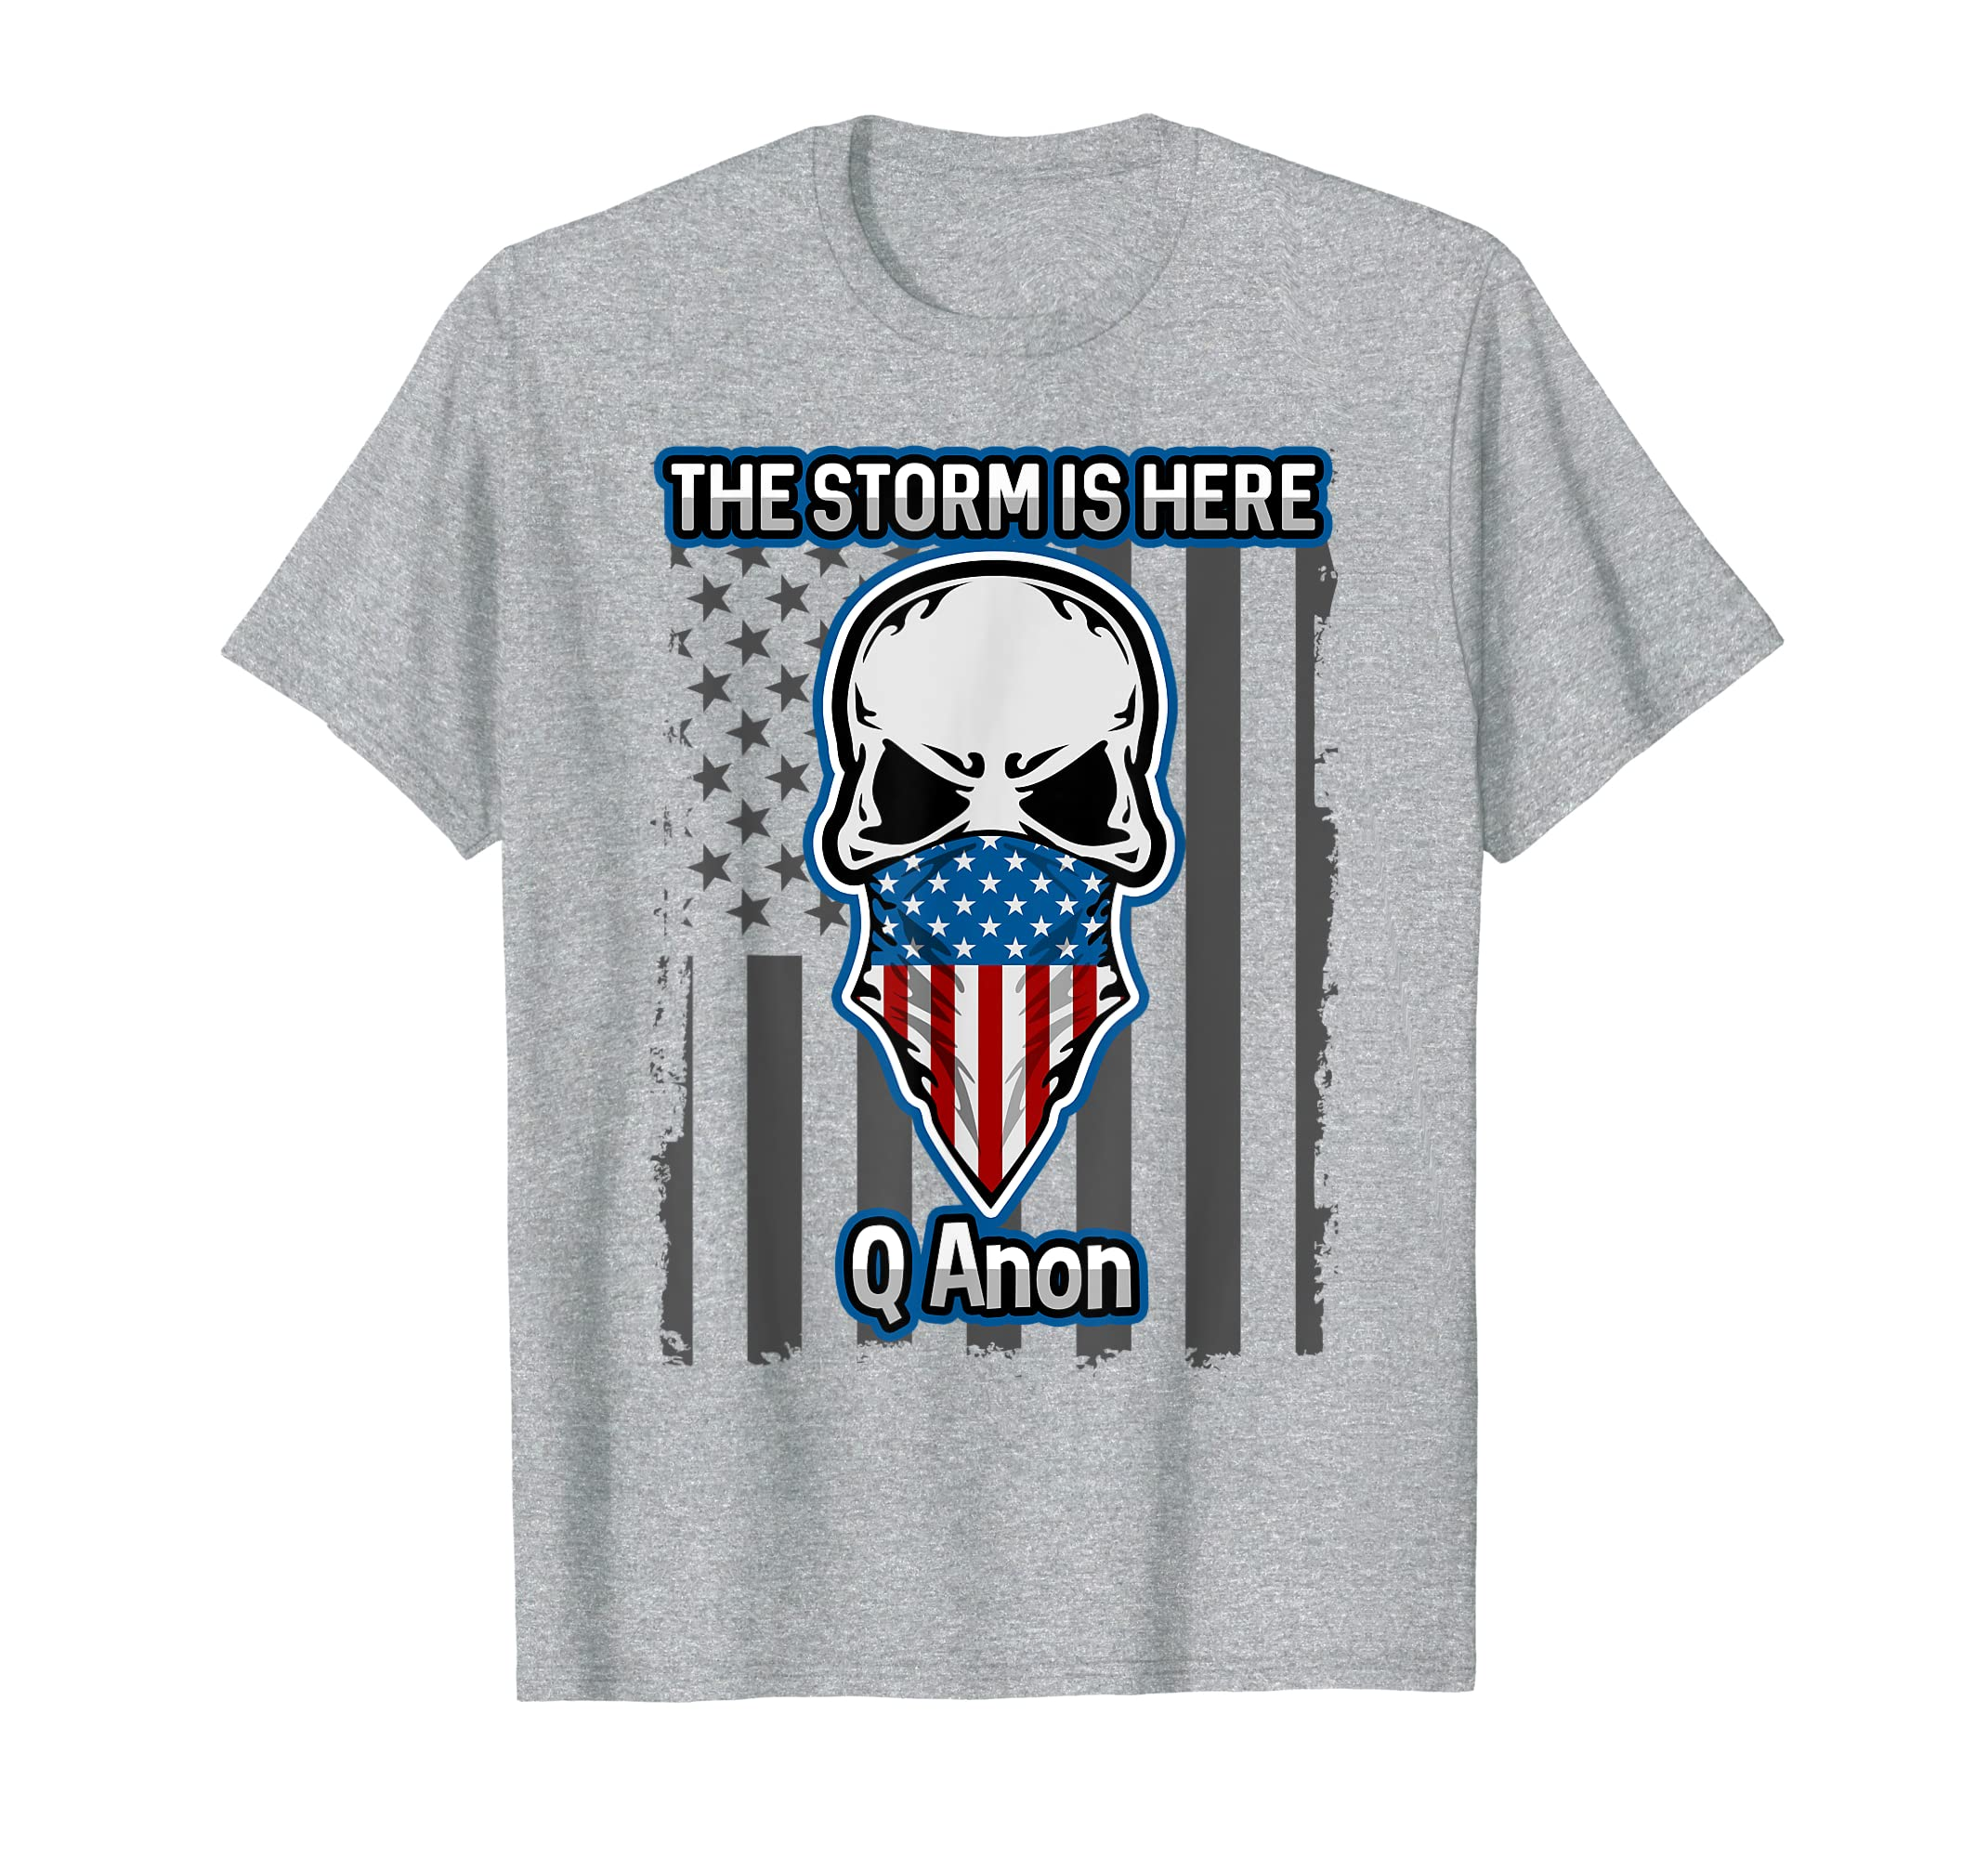 a257e5cf8e2c5 Amazon.com  Q Anon T-shirt American Flag Skull The Storm Is Here WWG1WGA   Clothing